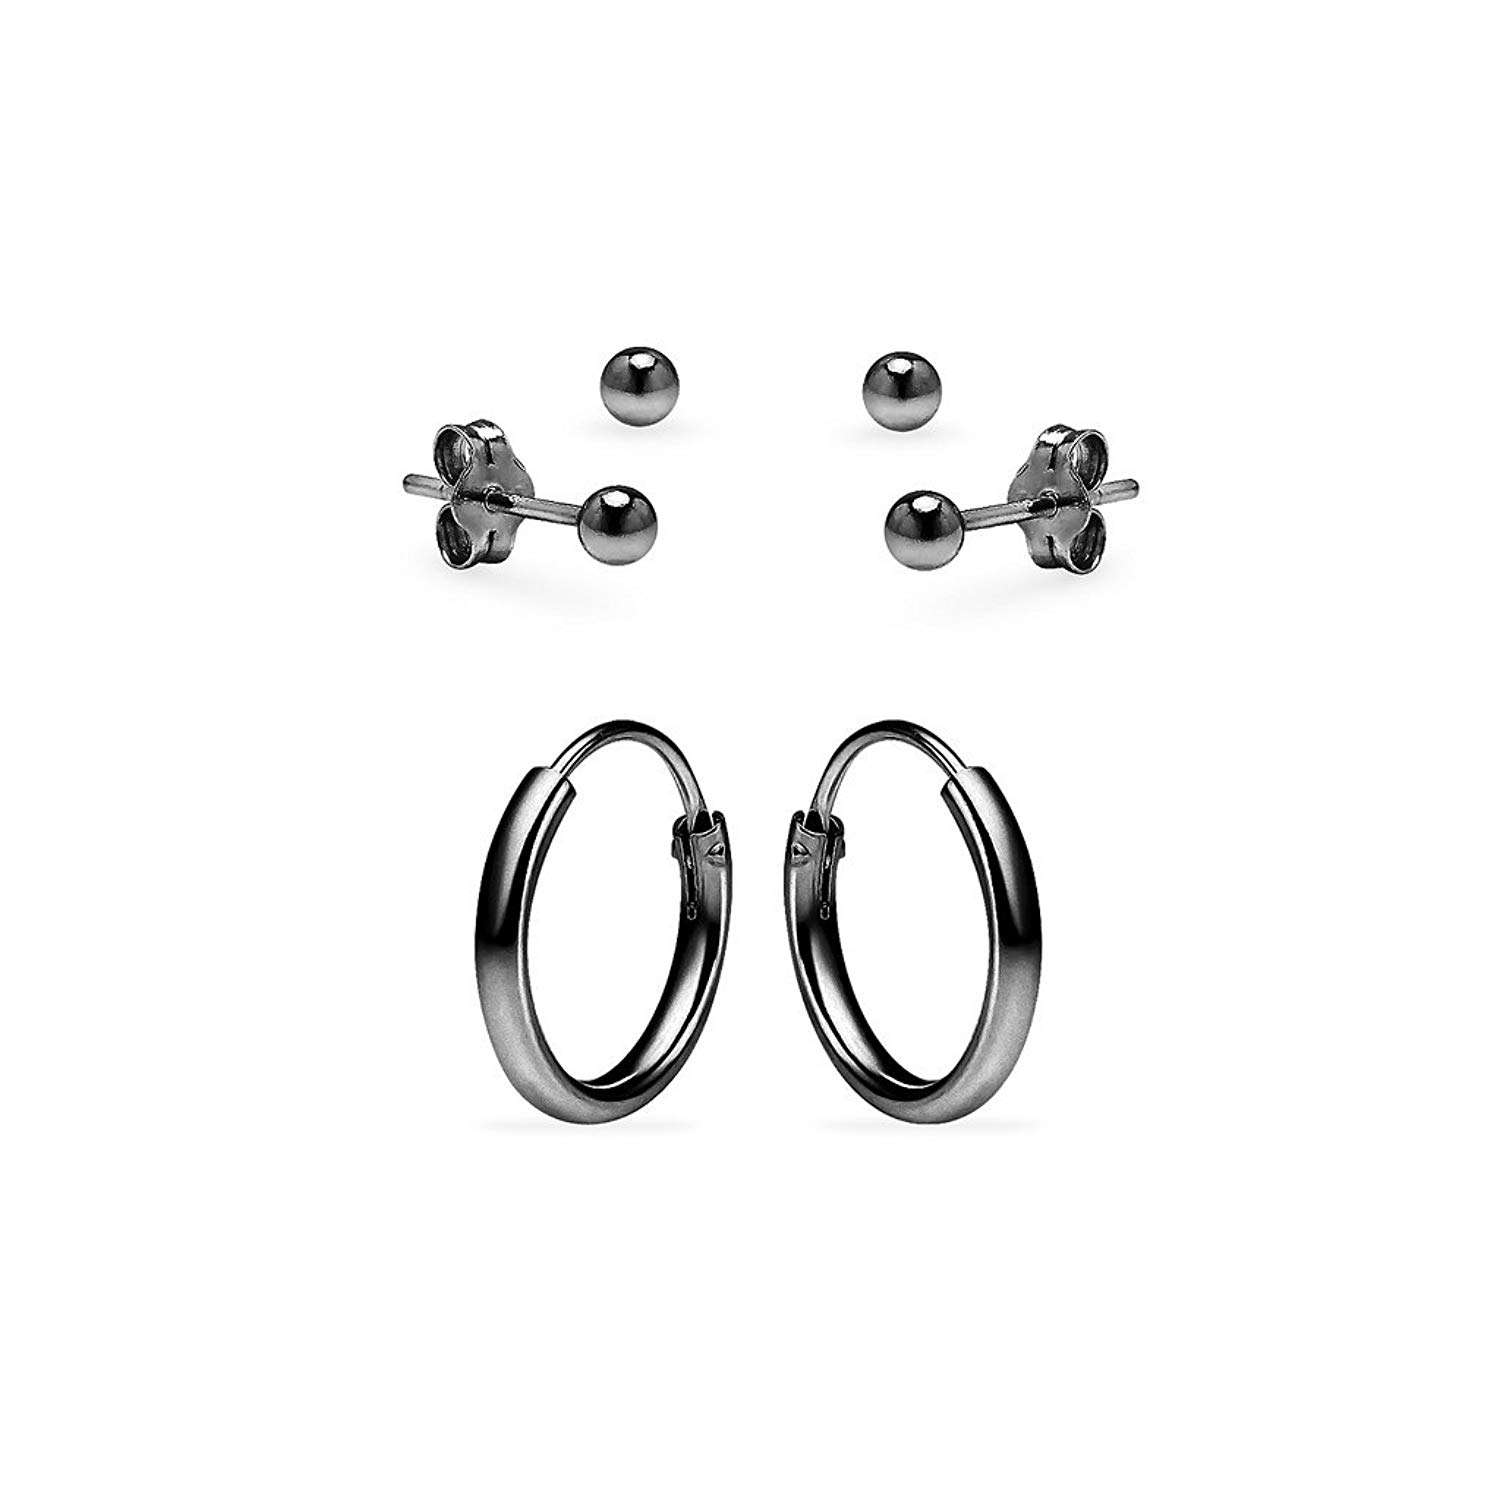 0c3bc2da2 Get Quotations · One Pair Sterling Silver 10mm Endless Hoops and Two Pairs  3mm Ball Stud Unisex Cartilage Earrings